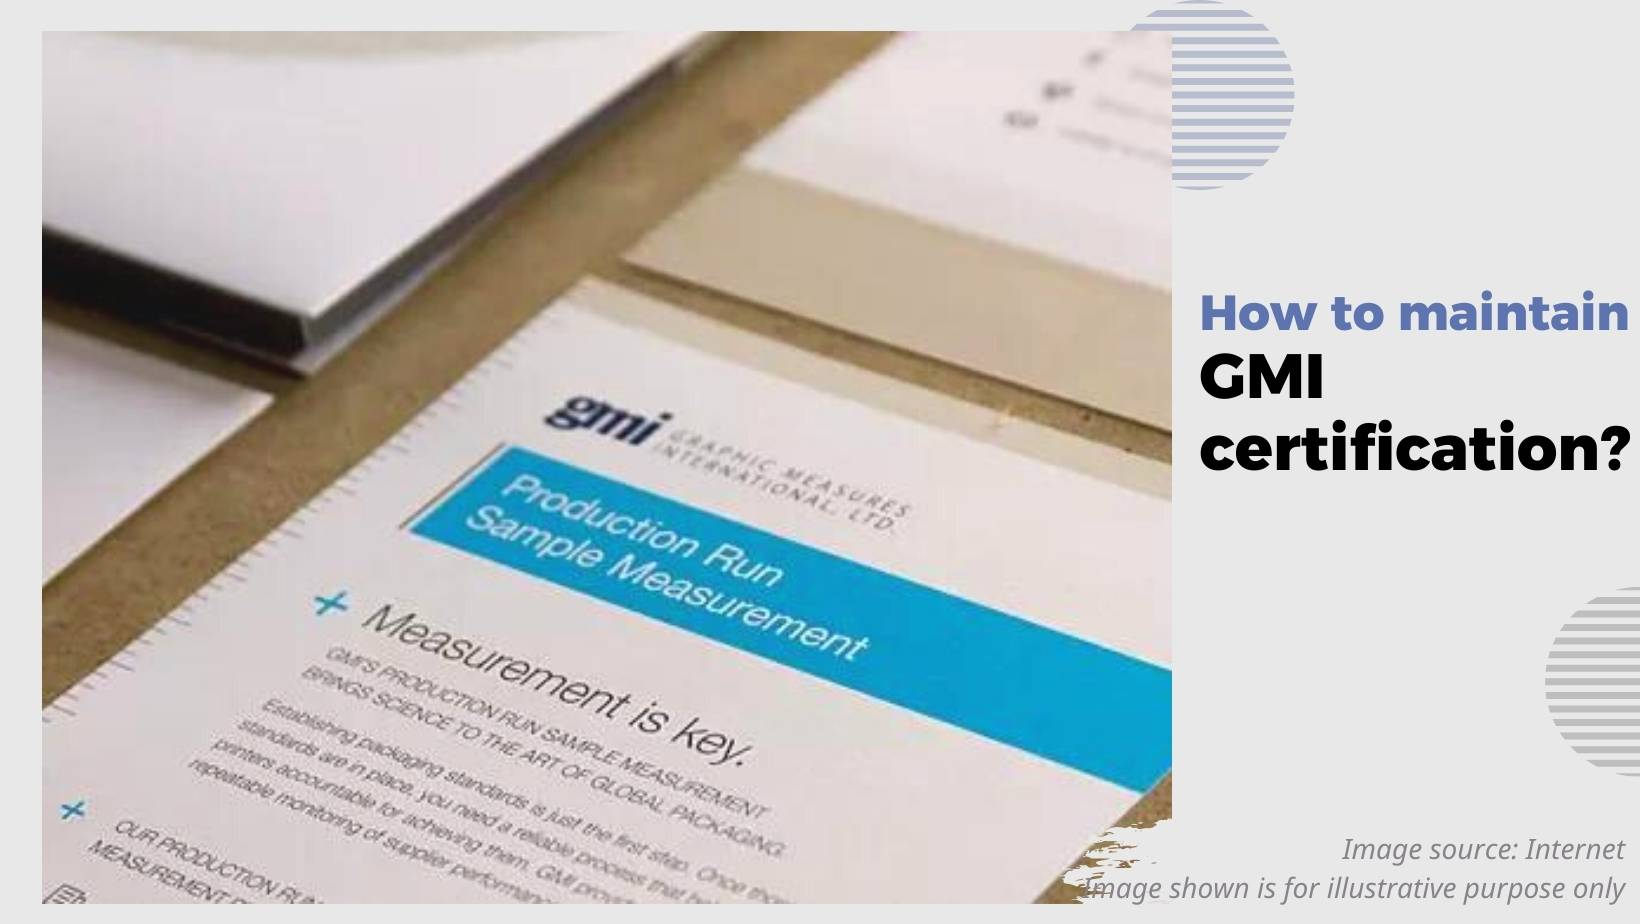 maintain certificate of Graphic Measures International